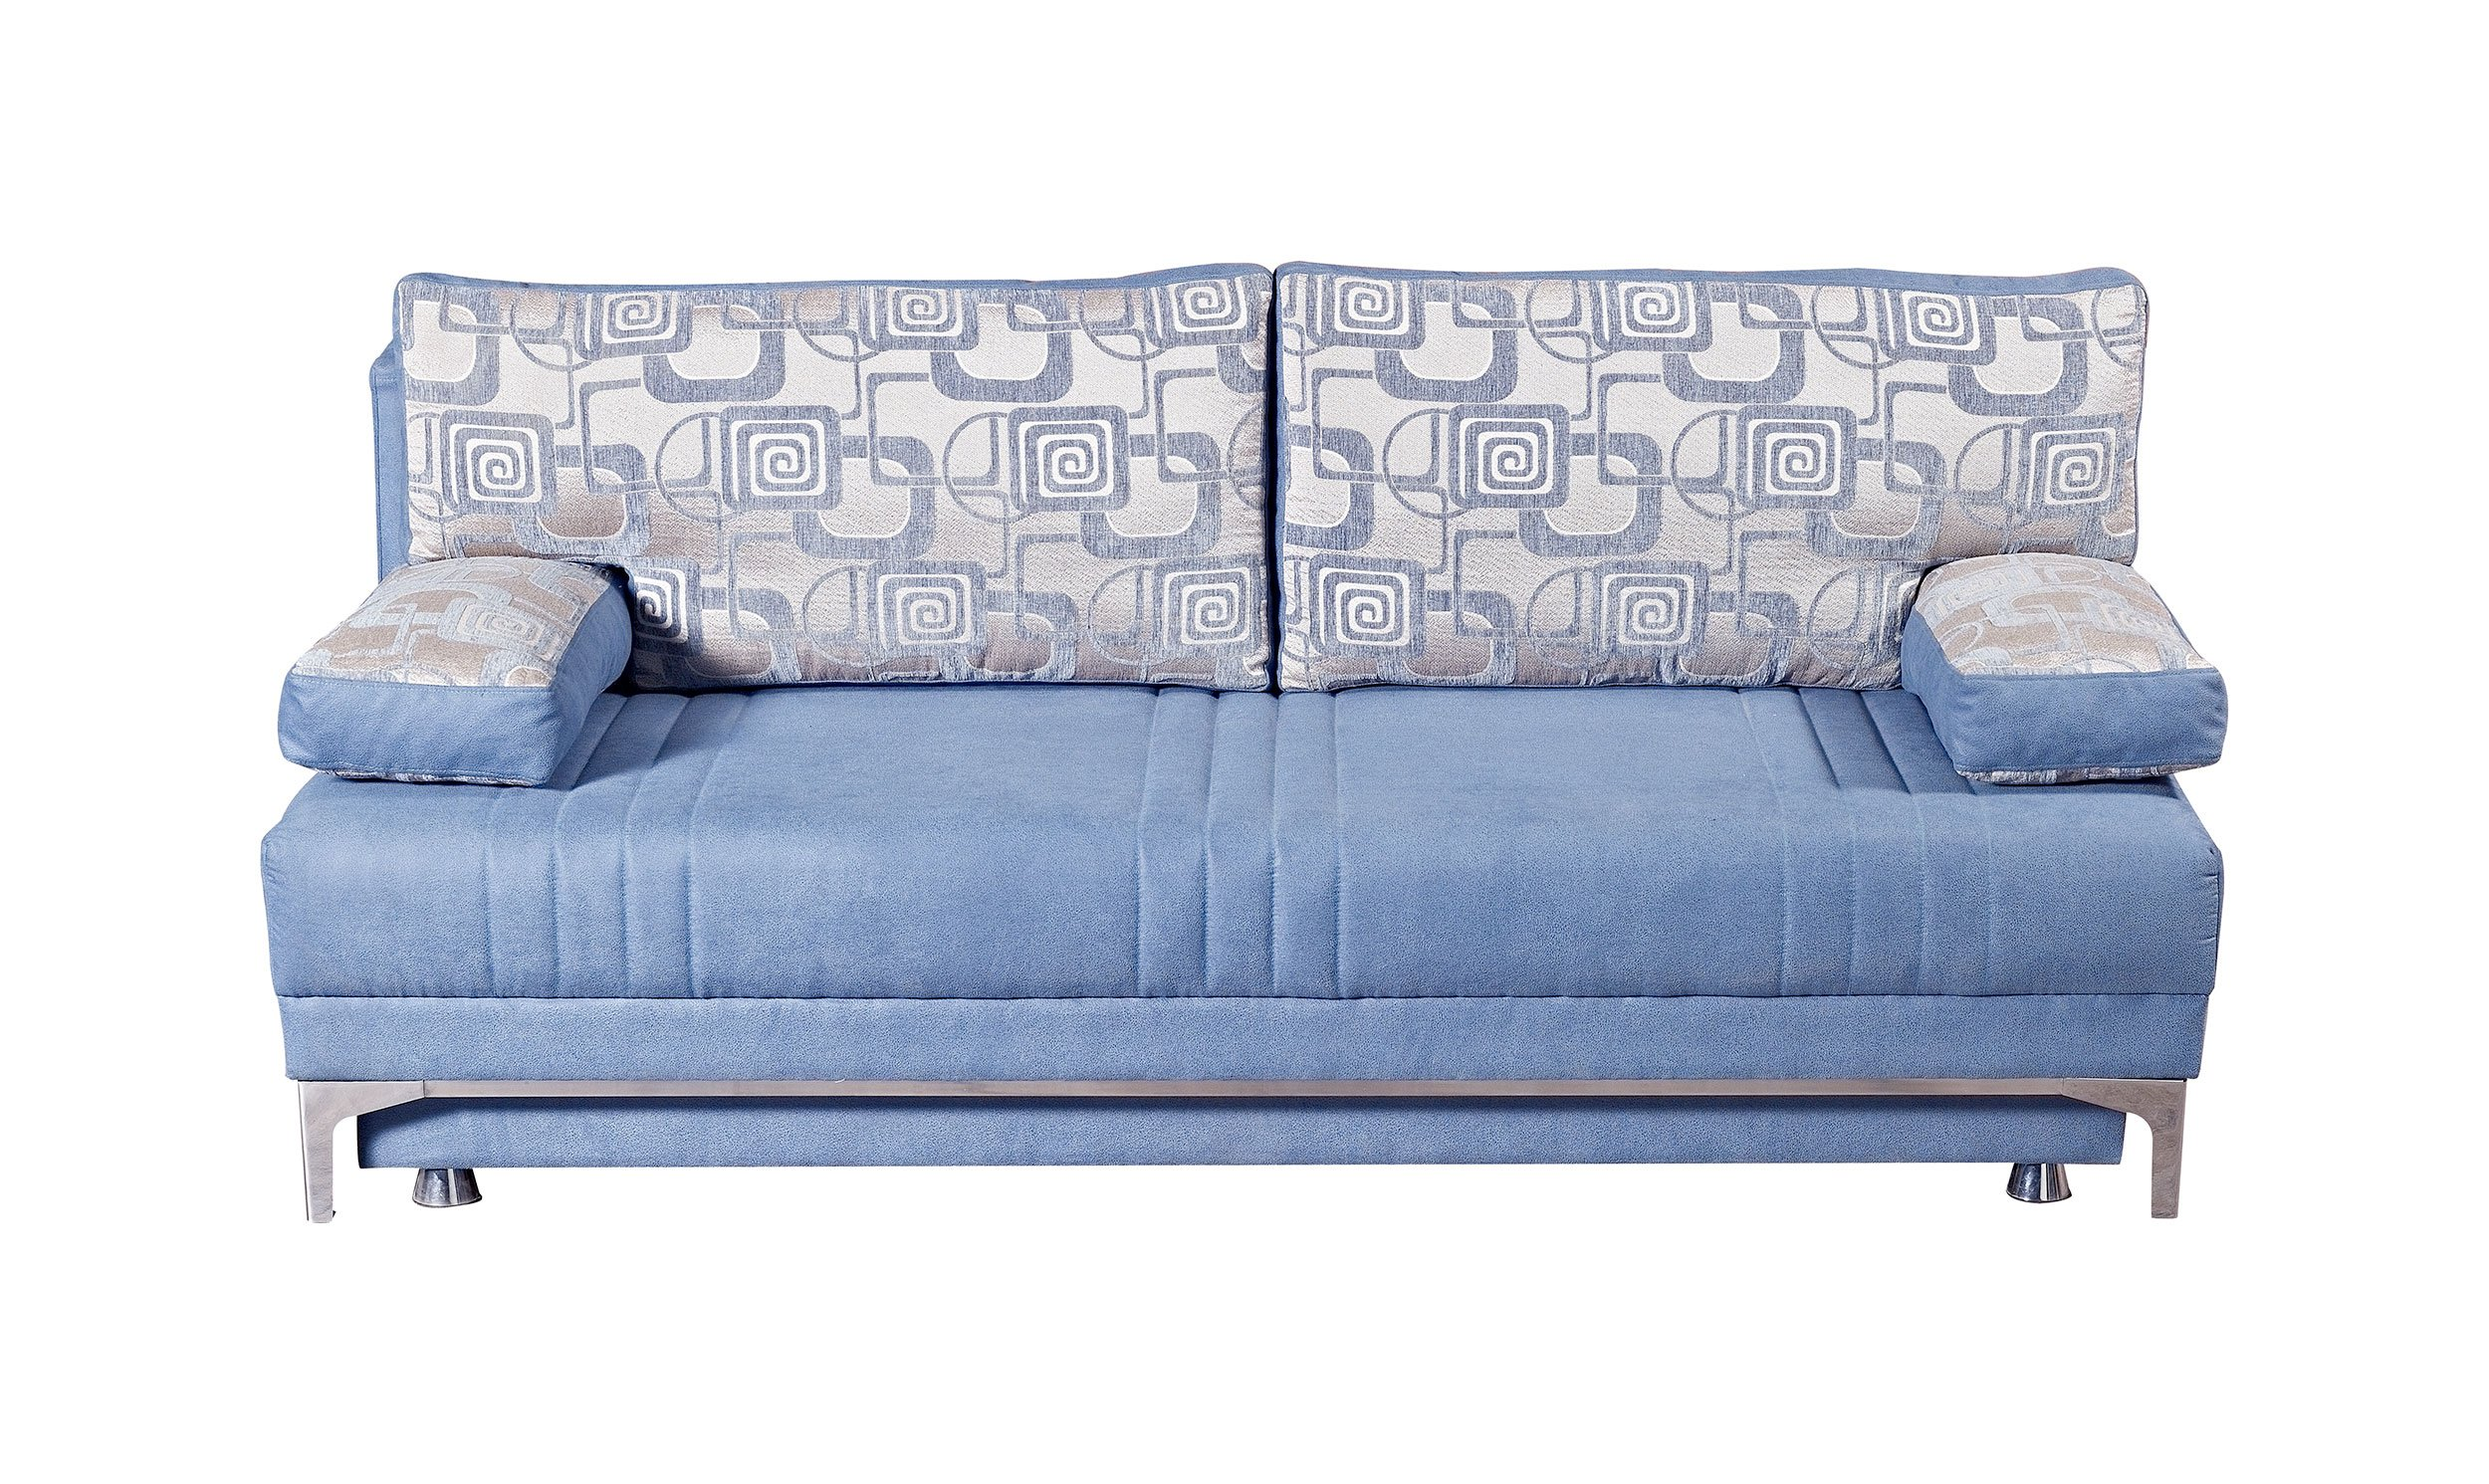 Europa vintage blue queen size sofa bed by mobista for Sofa bed queen size